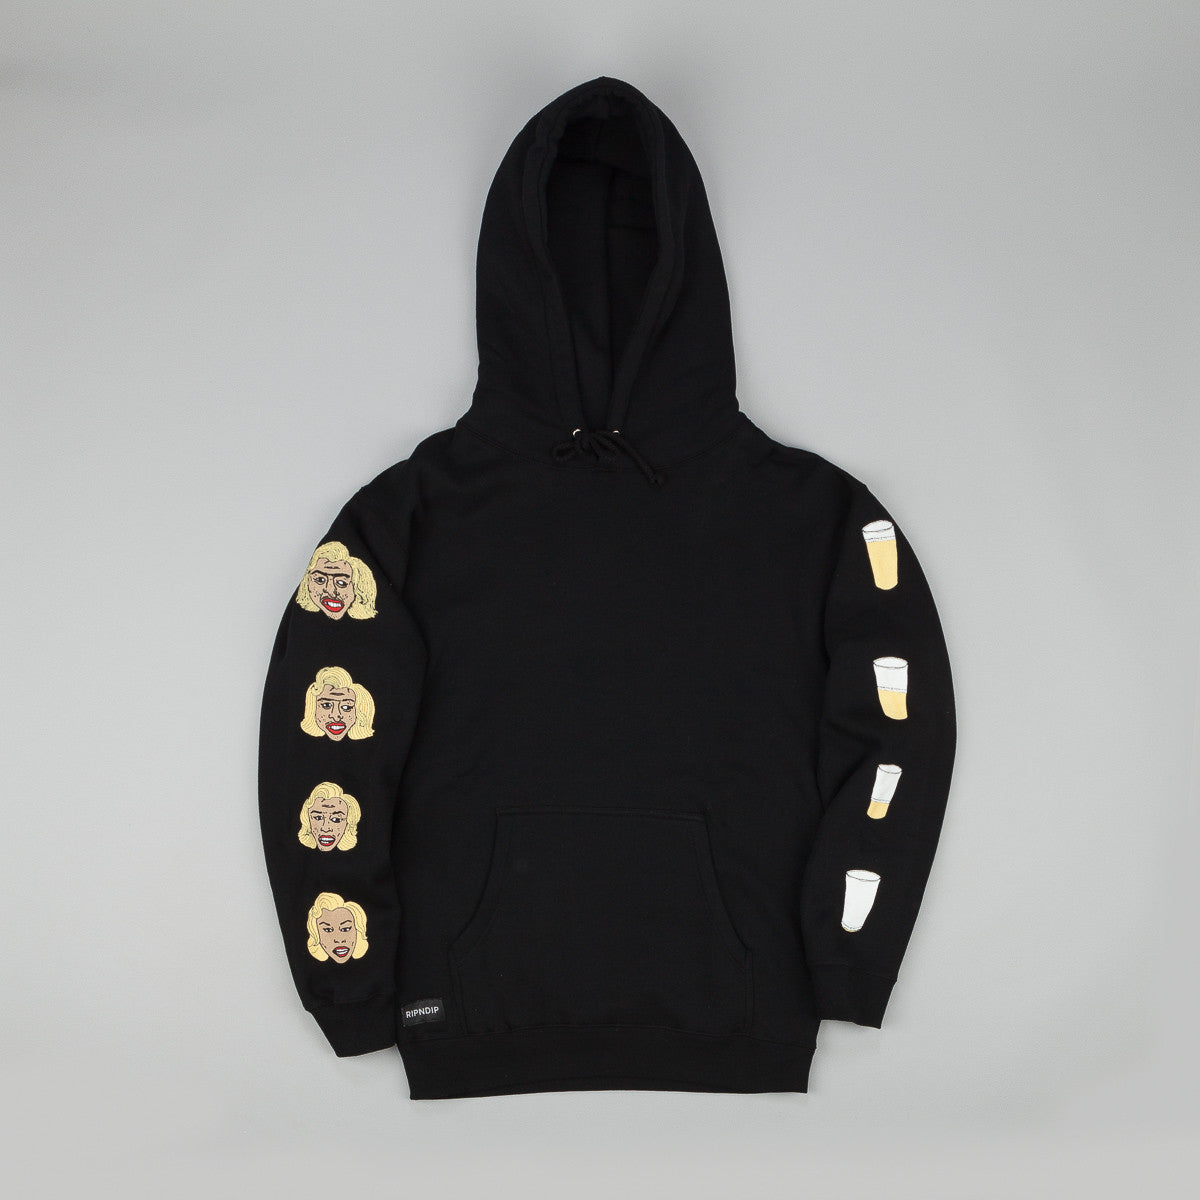 Rip N Dip Beer Me Hooded Sweatshirt - Black